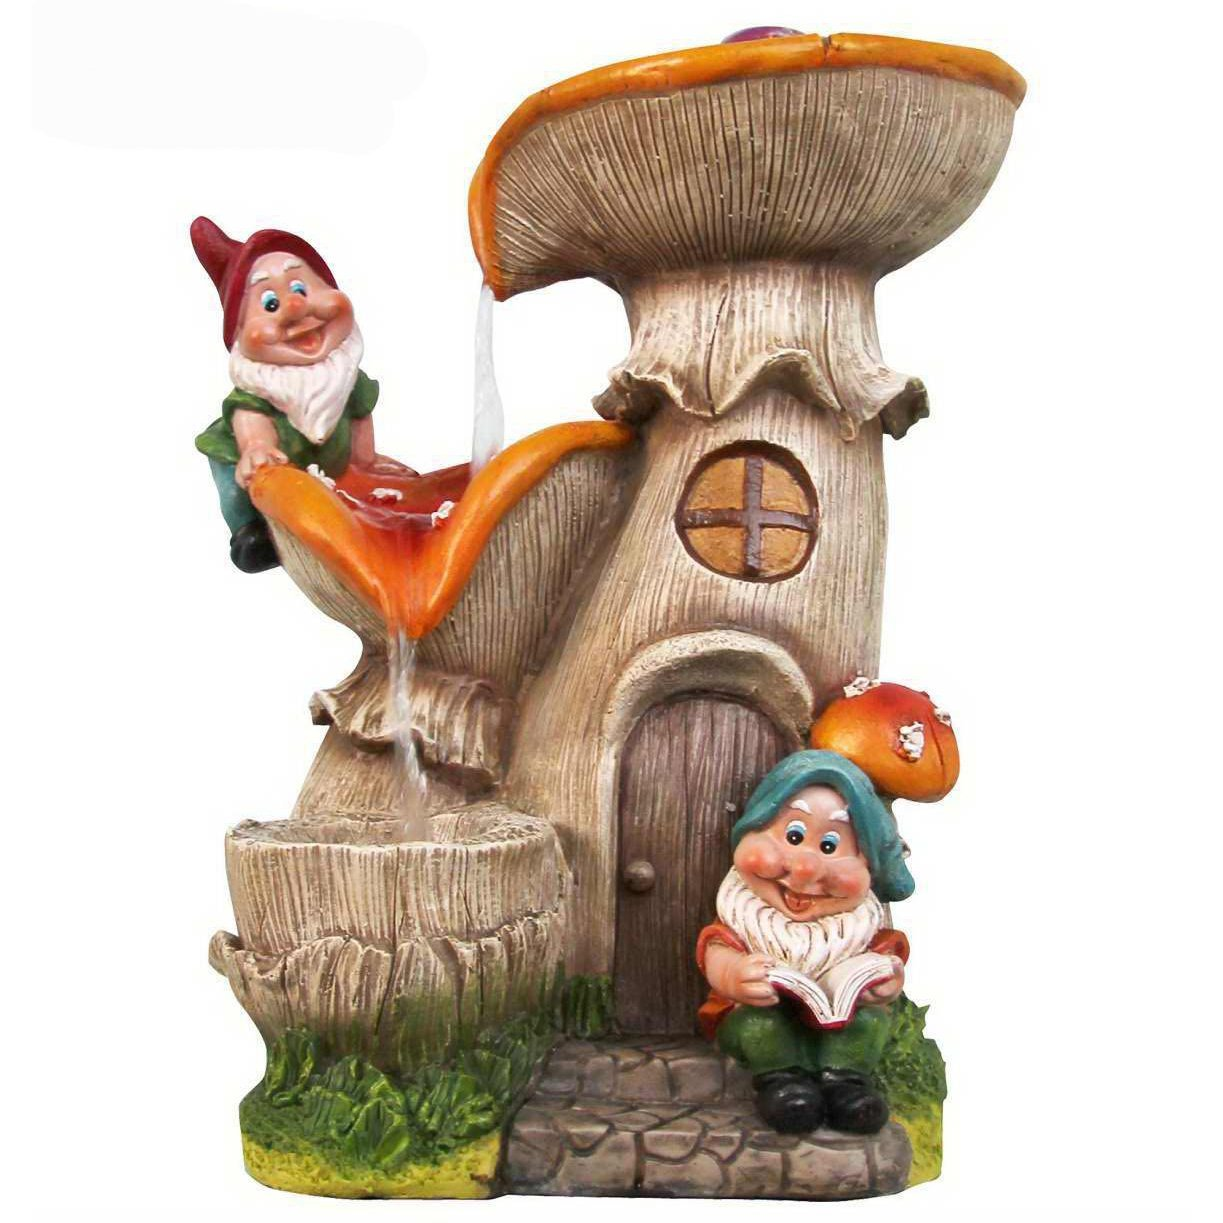 Two Gnomes Mushroom House Sculptural Fountain Made w/ Resin In Multi Color 12.91'' H x 10.16'' W x 9.72'' D